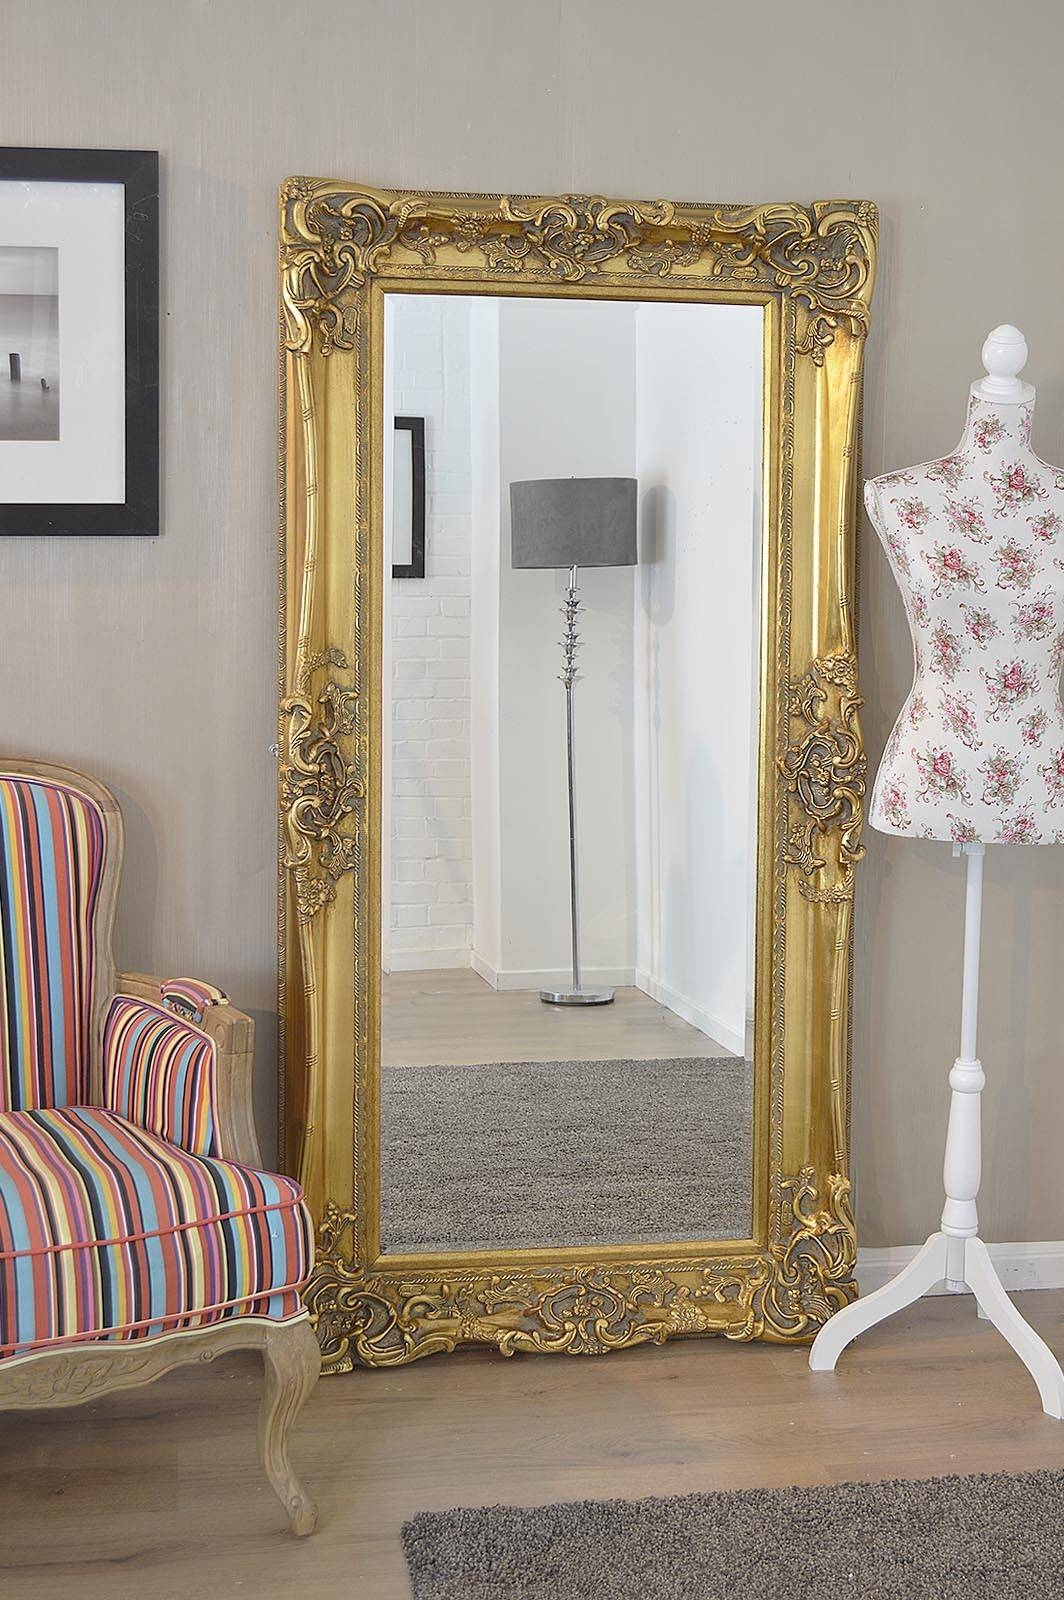 Ornate Mirrors For Sale 125 Awesome Exterior With Large Wall Within Large Ornate Wall Mirrors (View 3 of 15)